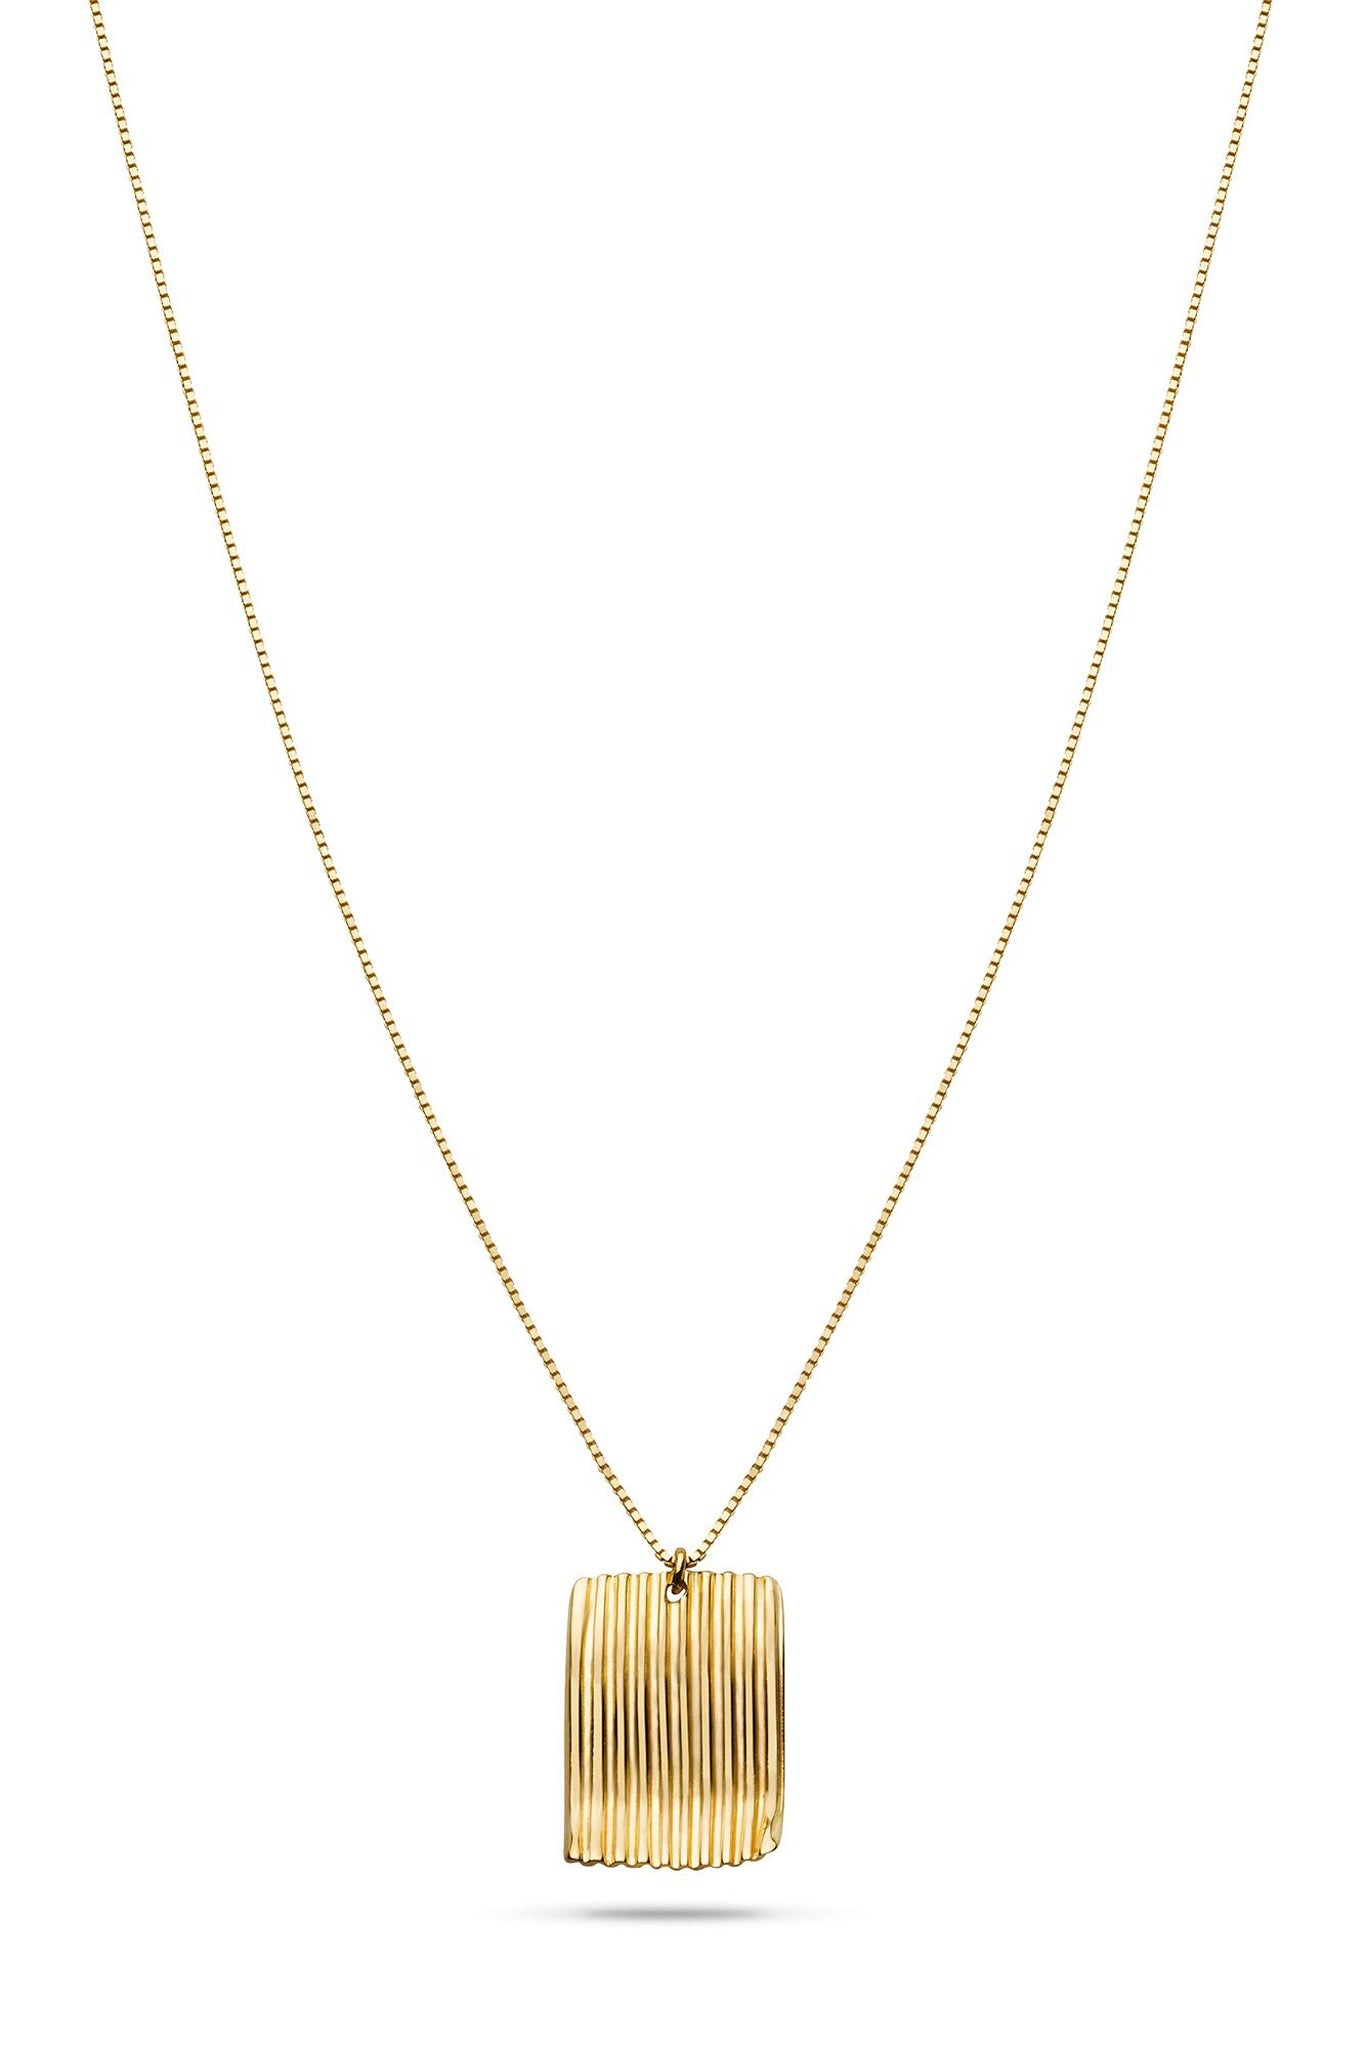 SQUARE CHIPS NECKLACE